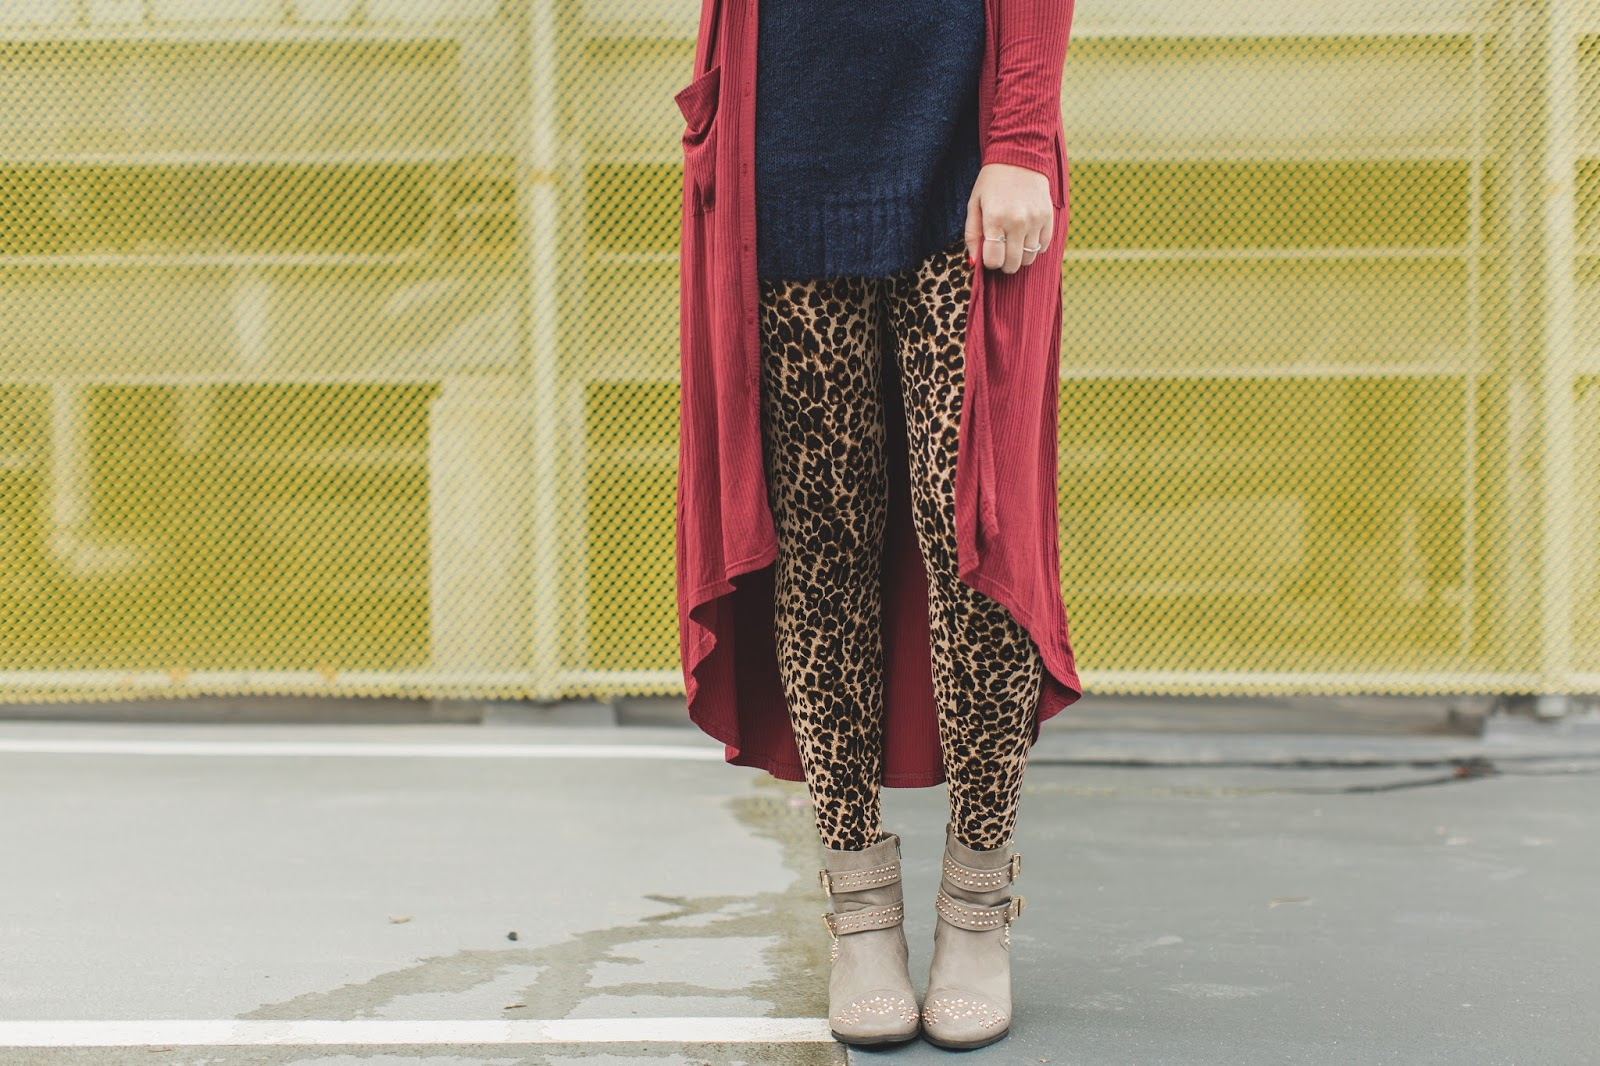 Leopard Leggings, Studded Boots, Utah Fashion Blogger